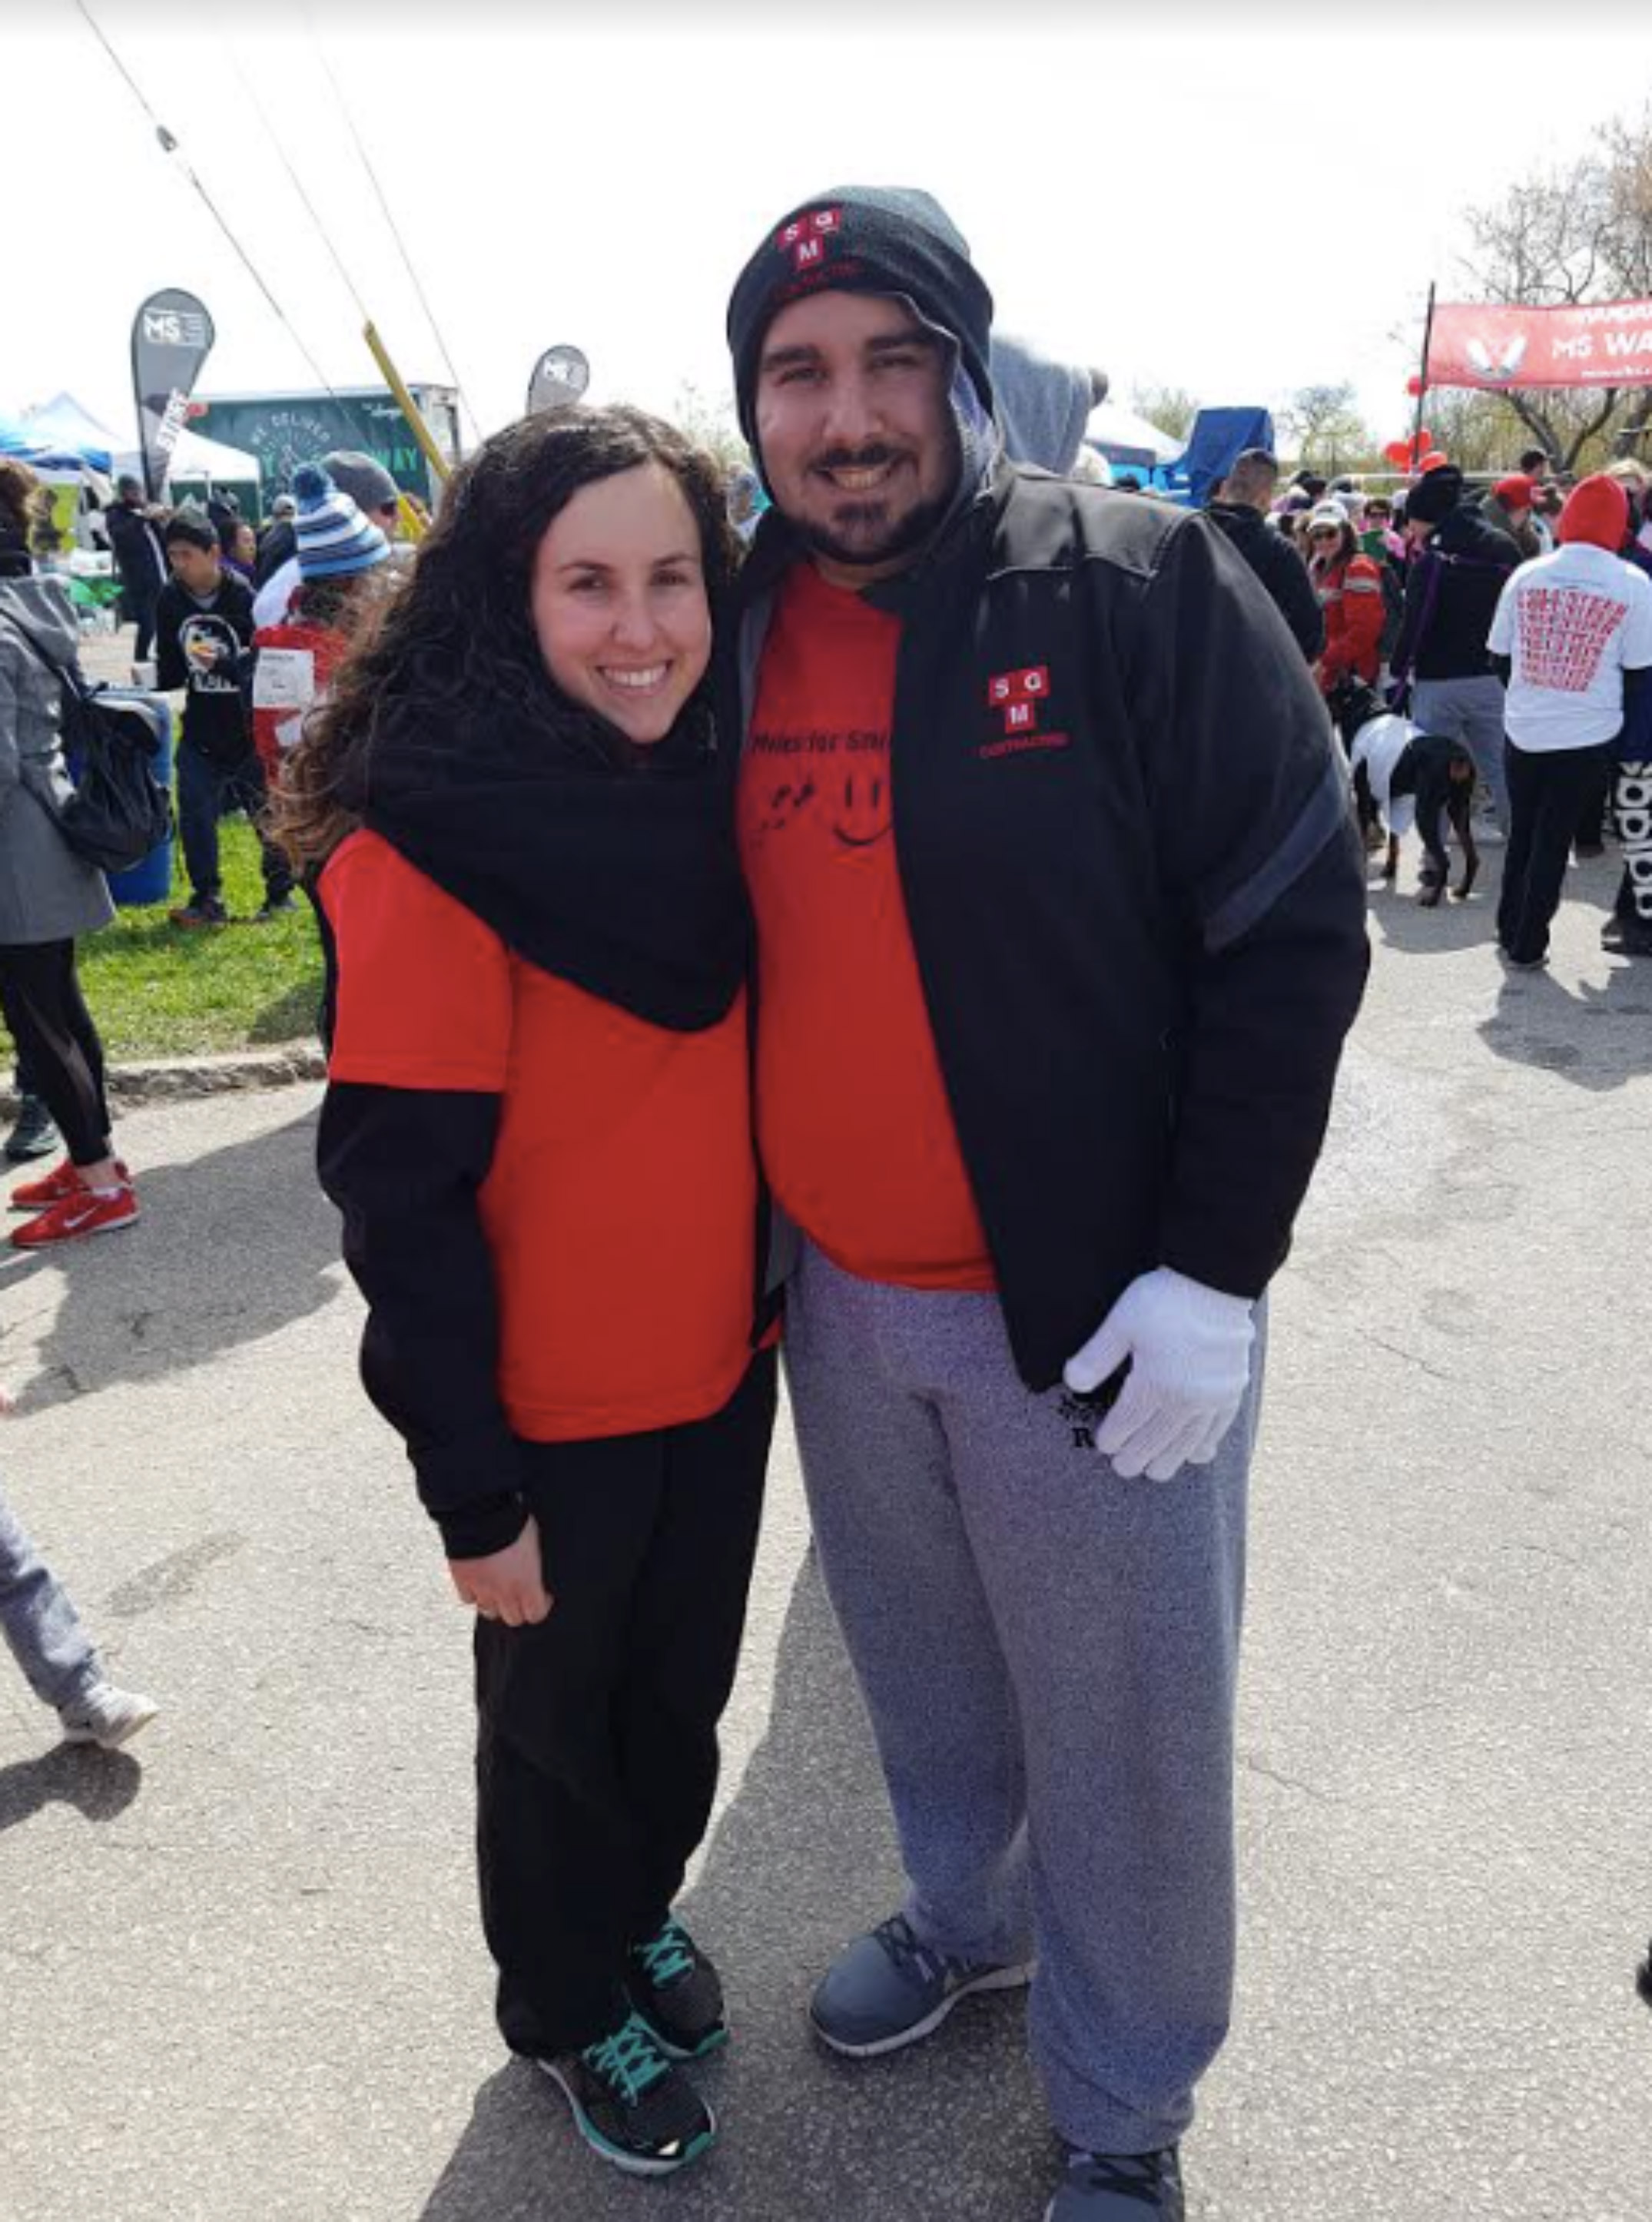 Giulia and man standing at MS Walk event.